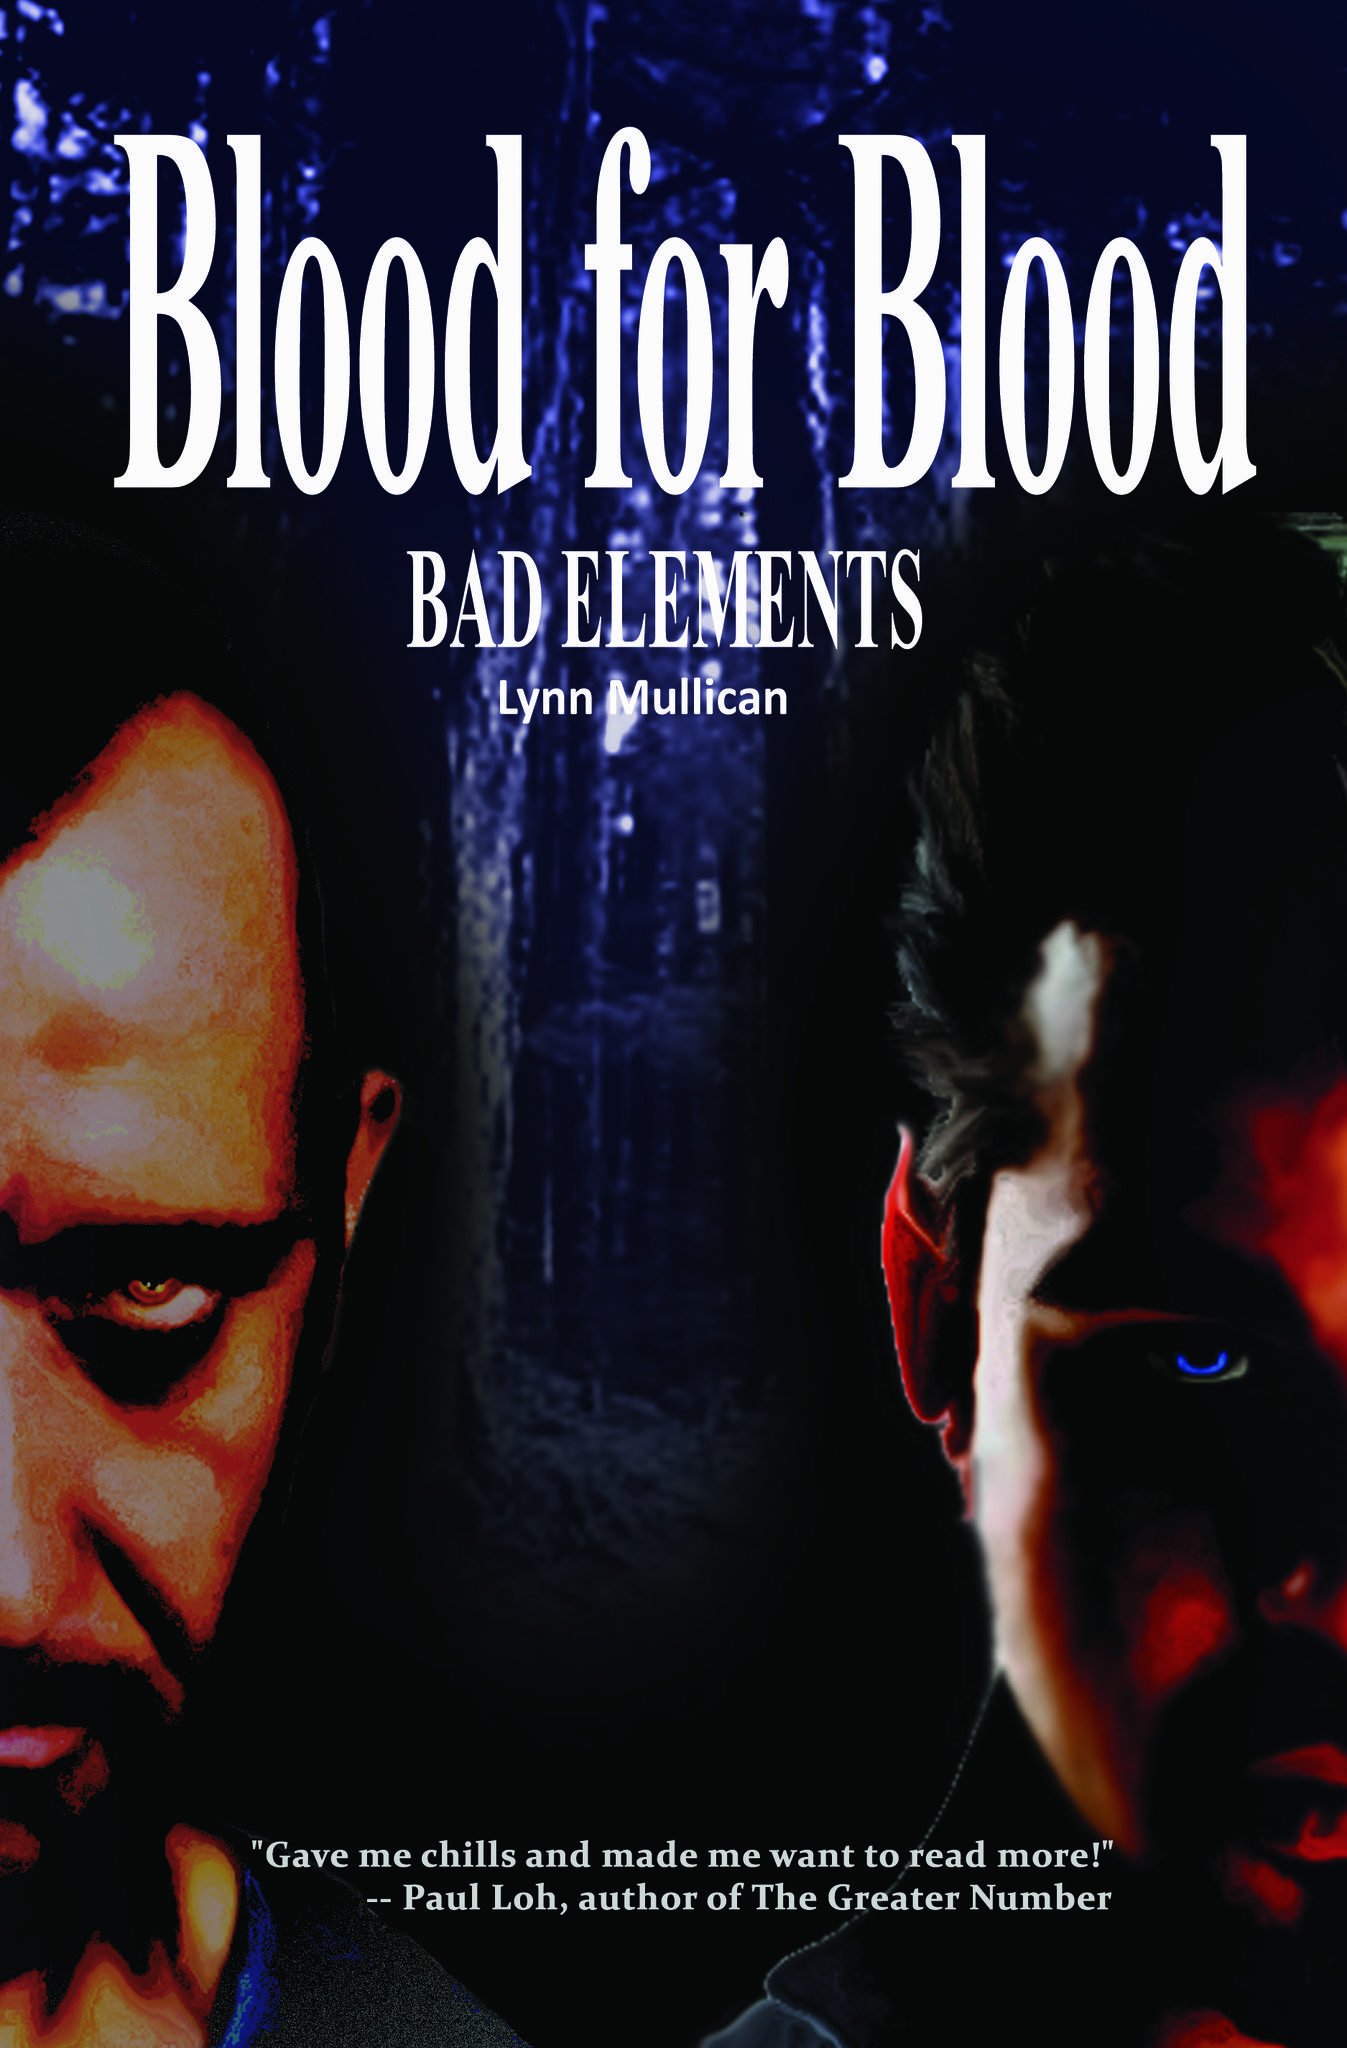 Bad Elements: Blood for Blood